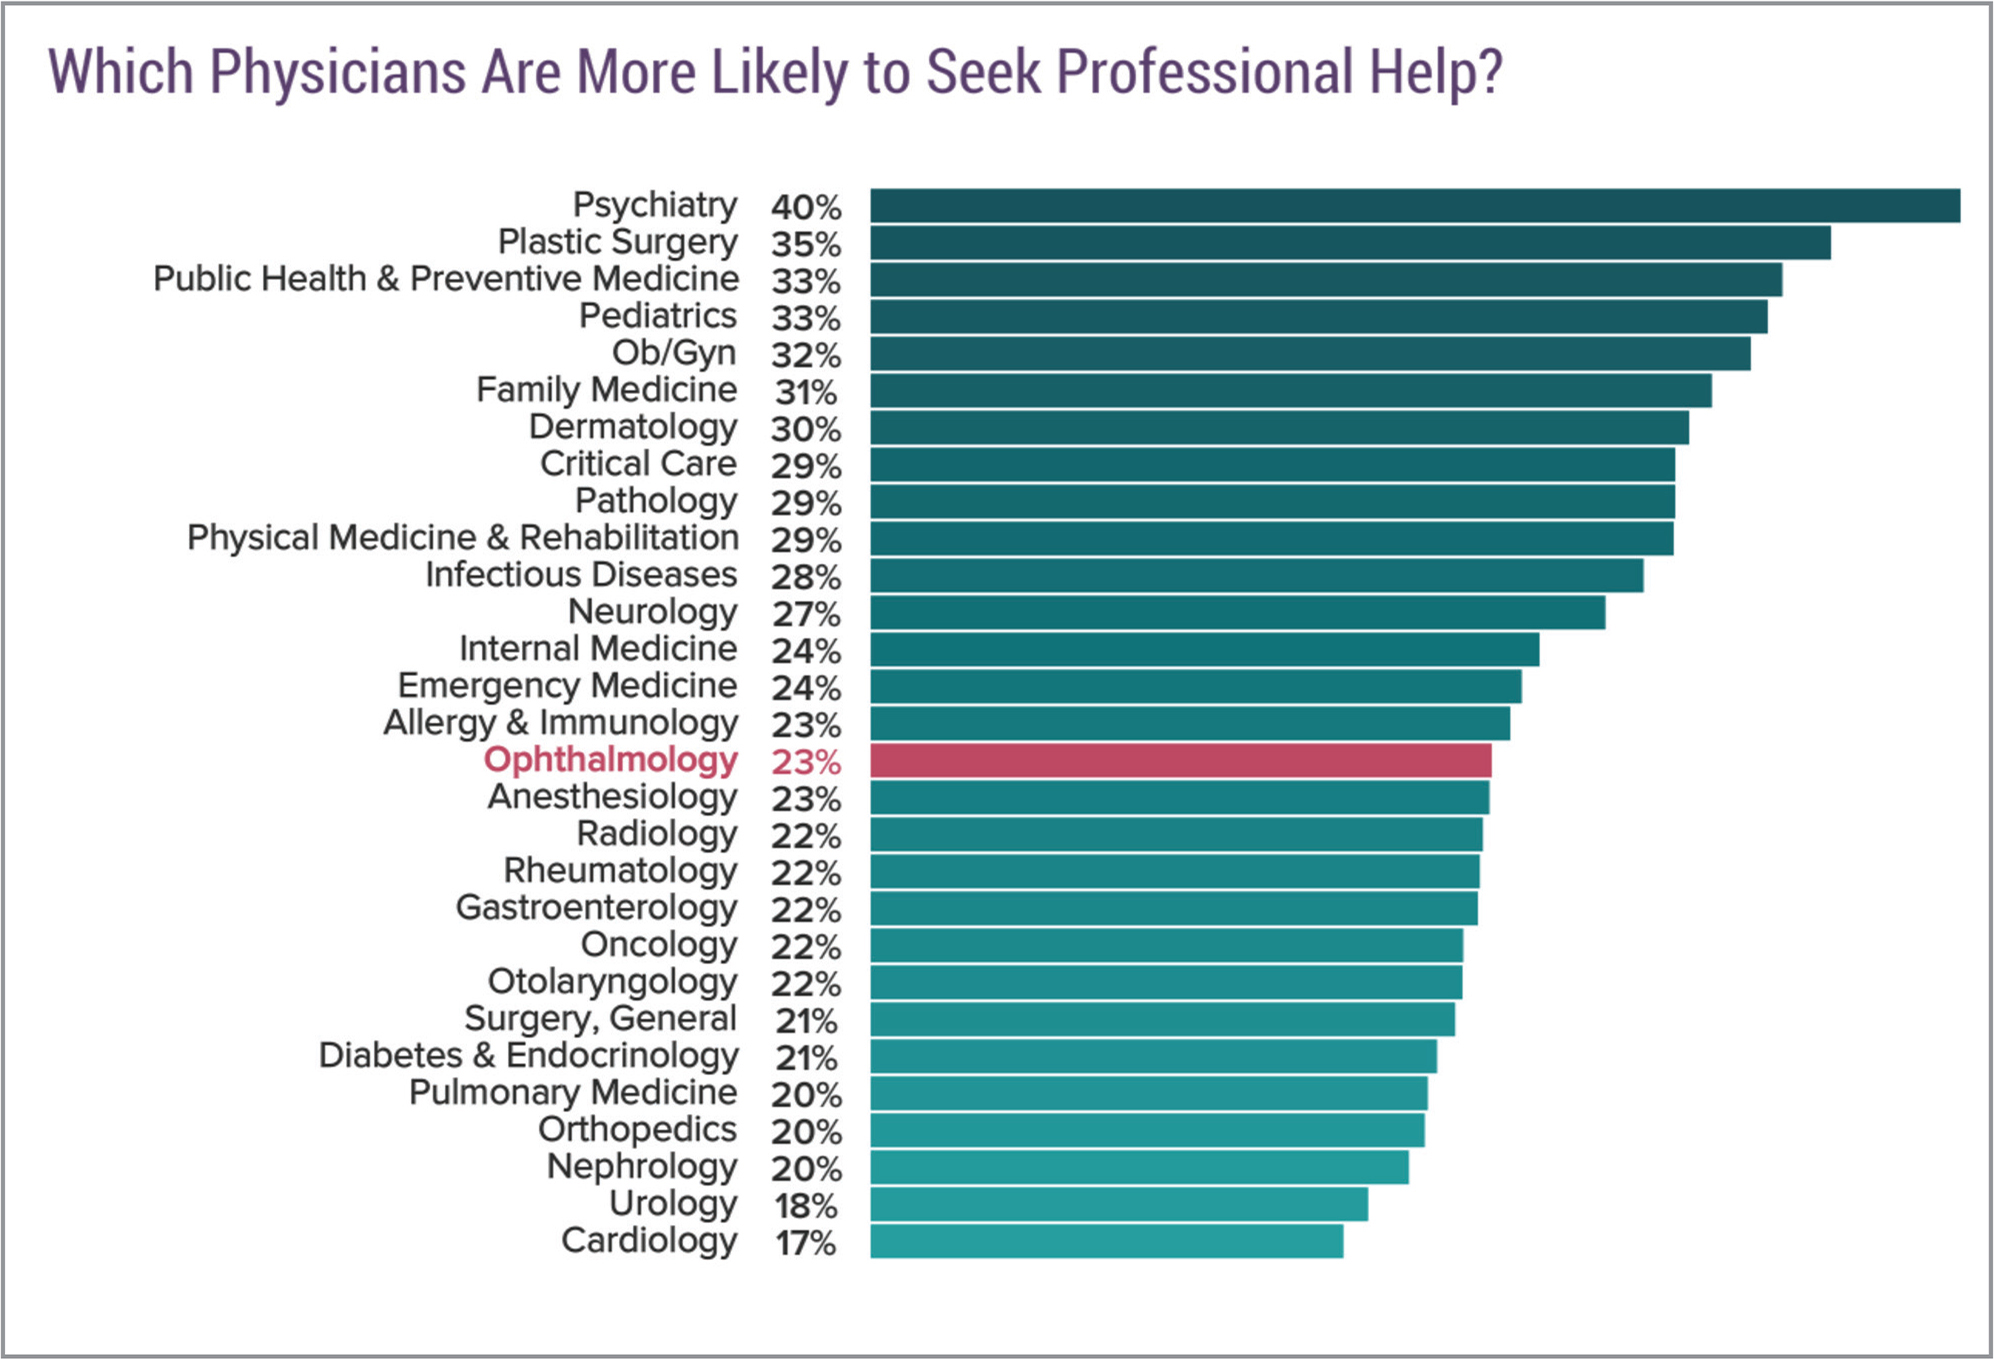 Despite more than 40% of ophthalmologists reporting burnout, only 23% report seeking professional help for it. Image courtesy of Medscape.